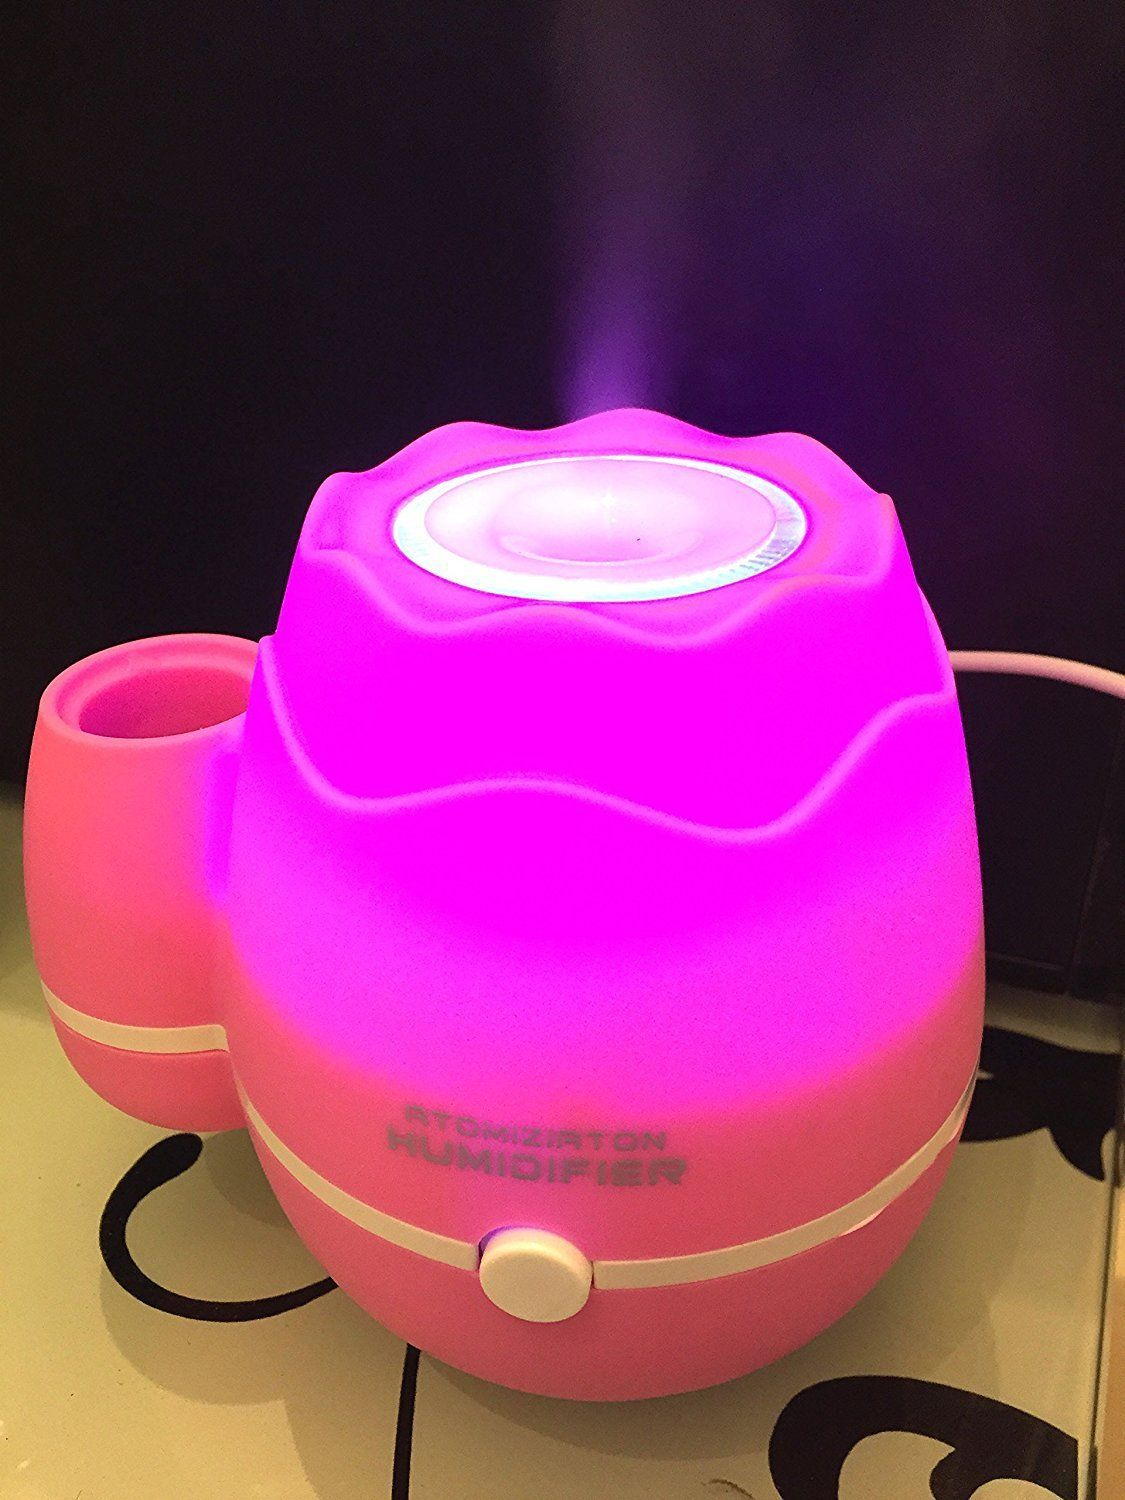 Amazoncom Ultrasonic Cool Mist Humidifier Premium Humidifying Automatic Air Unit With Whisper Quiet